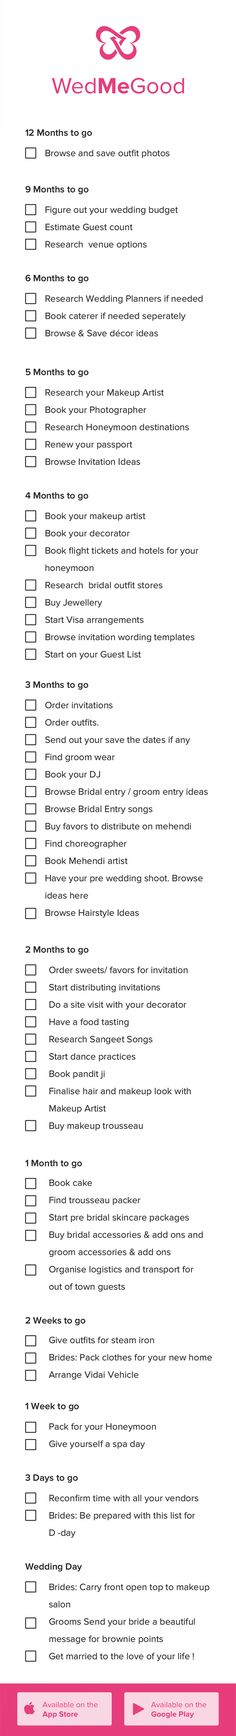 Indian Wedding Checklist . WedMeGood Checklist - Things to Do 1 Year Checklist for a Bride to Be | WedMeGood | #bride2be #checklist #indianwedding #indianbride #bride #wedmegood